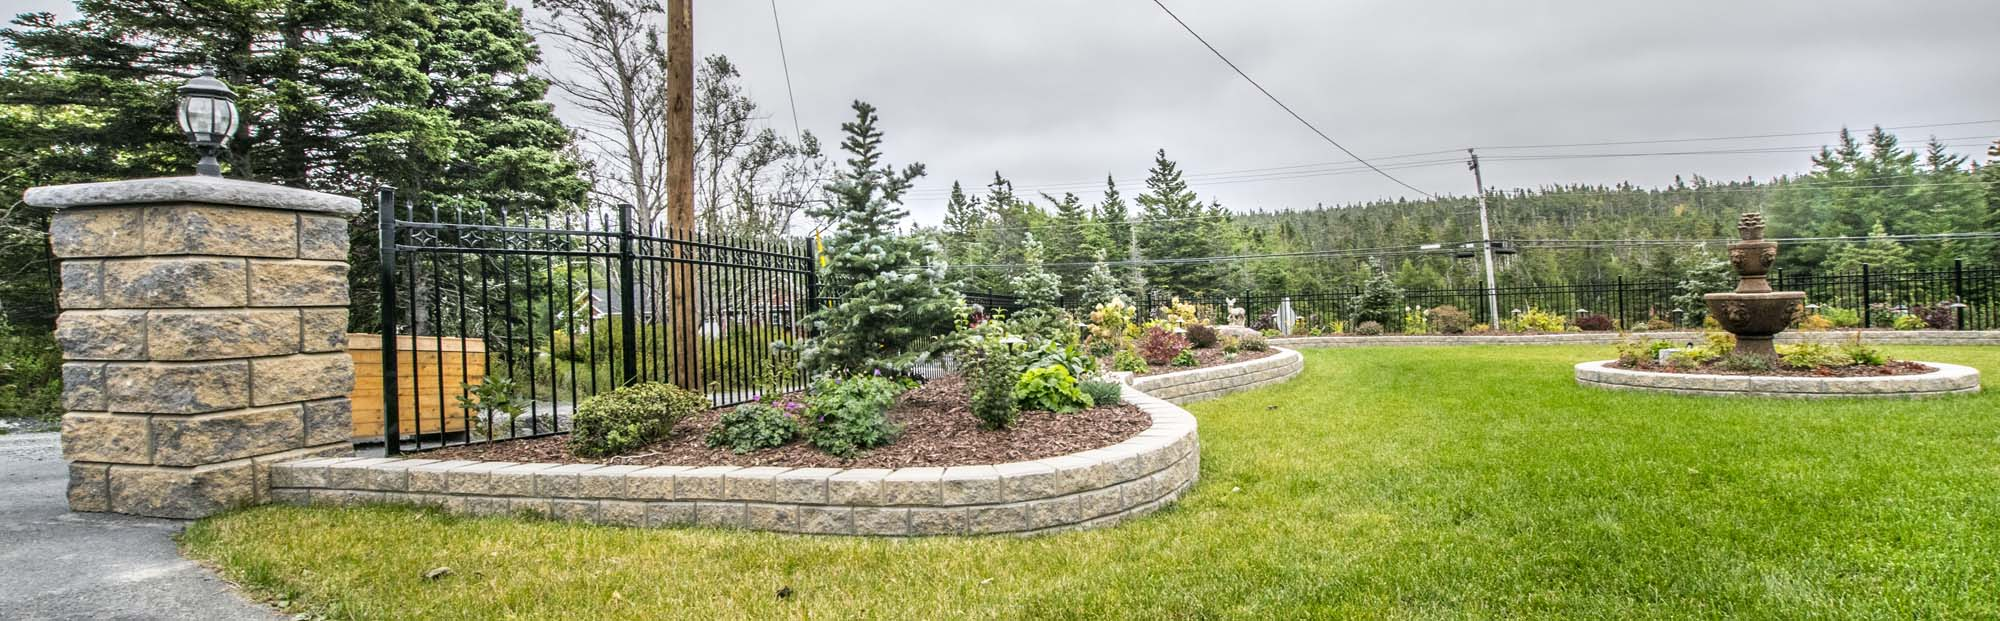 Retaining wall - Stackstone project 8